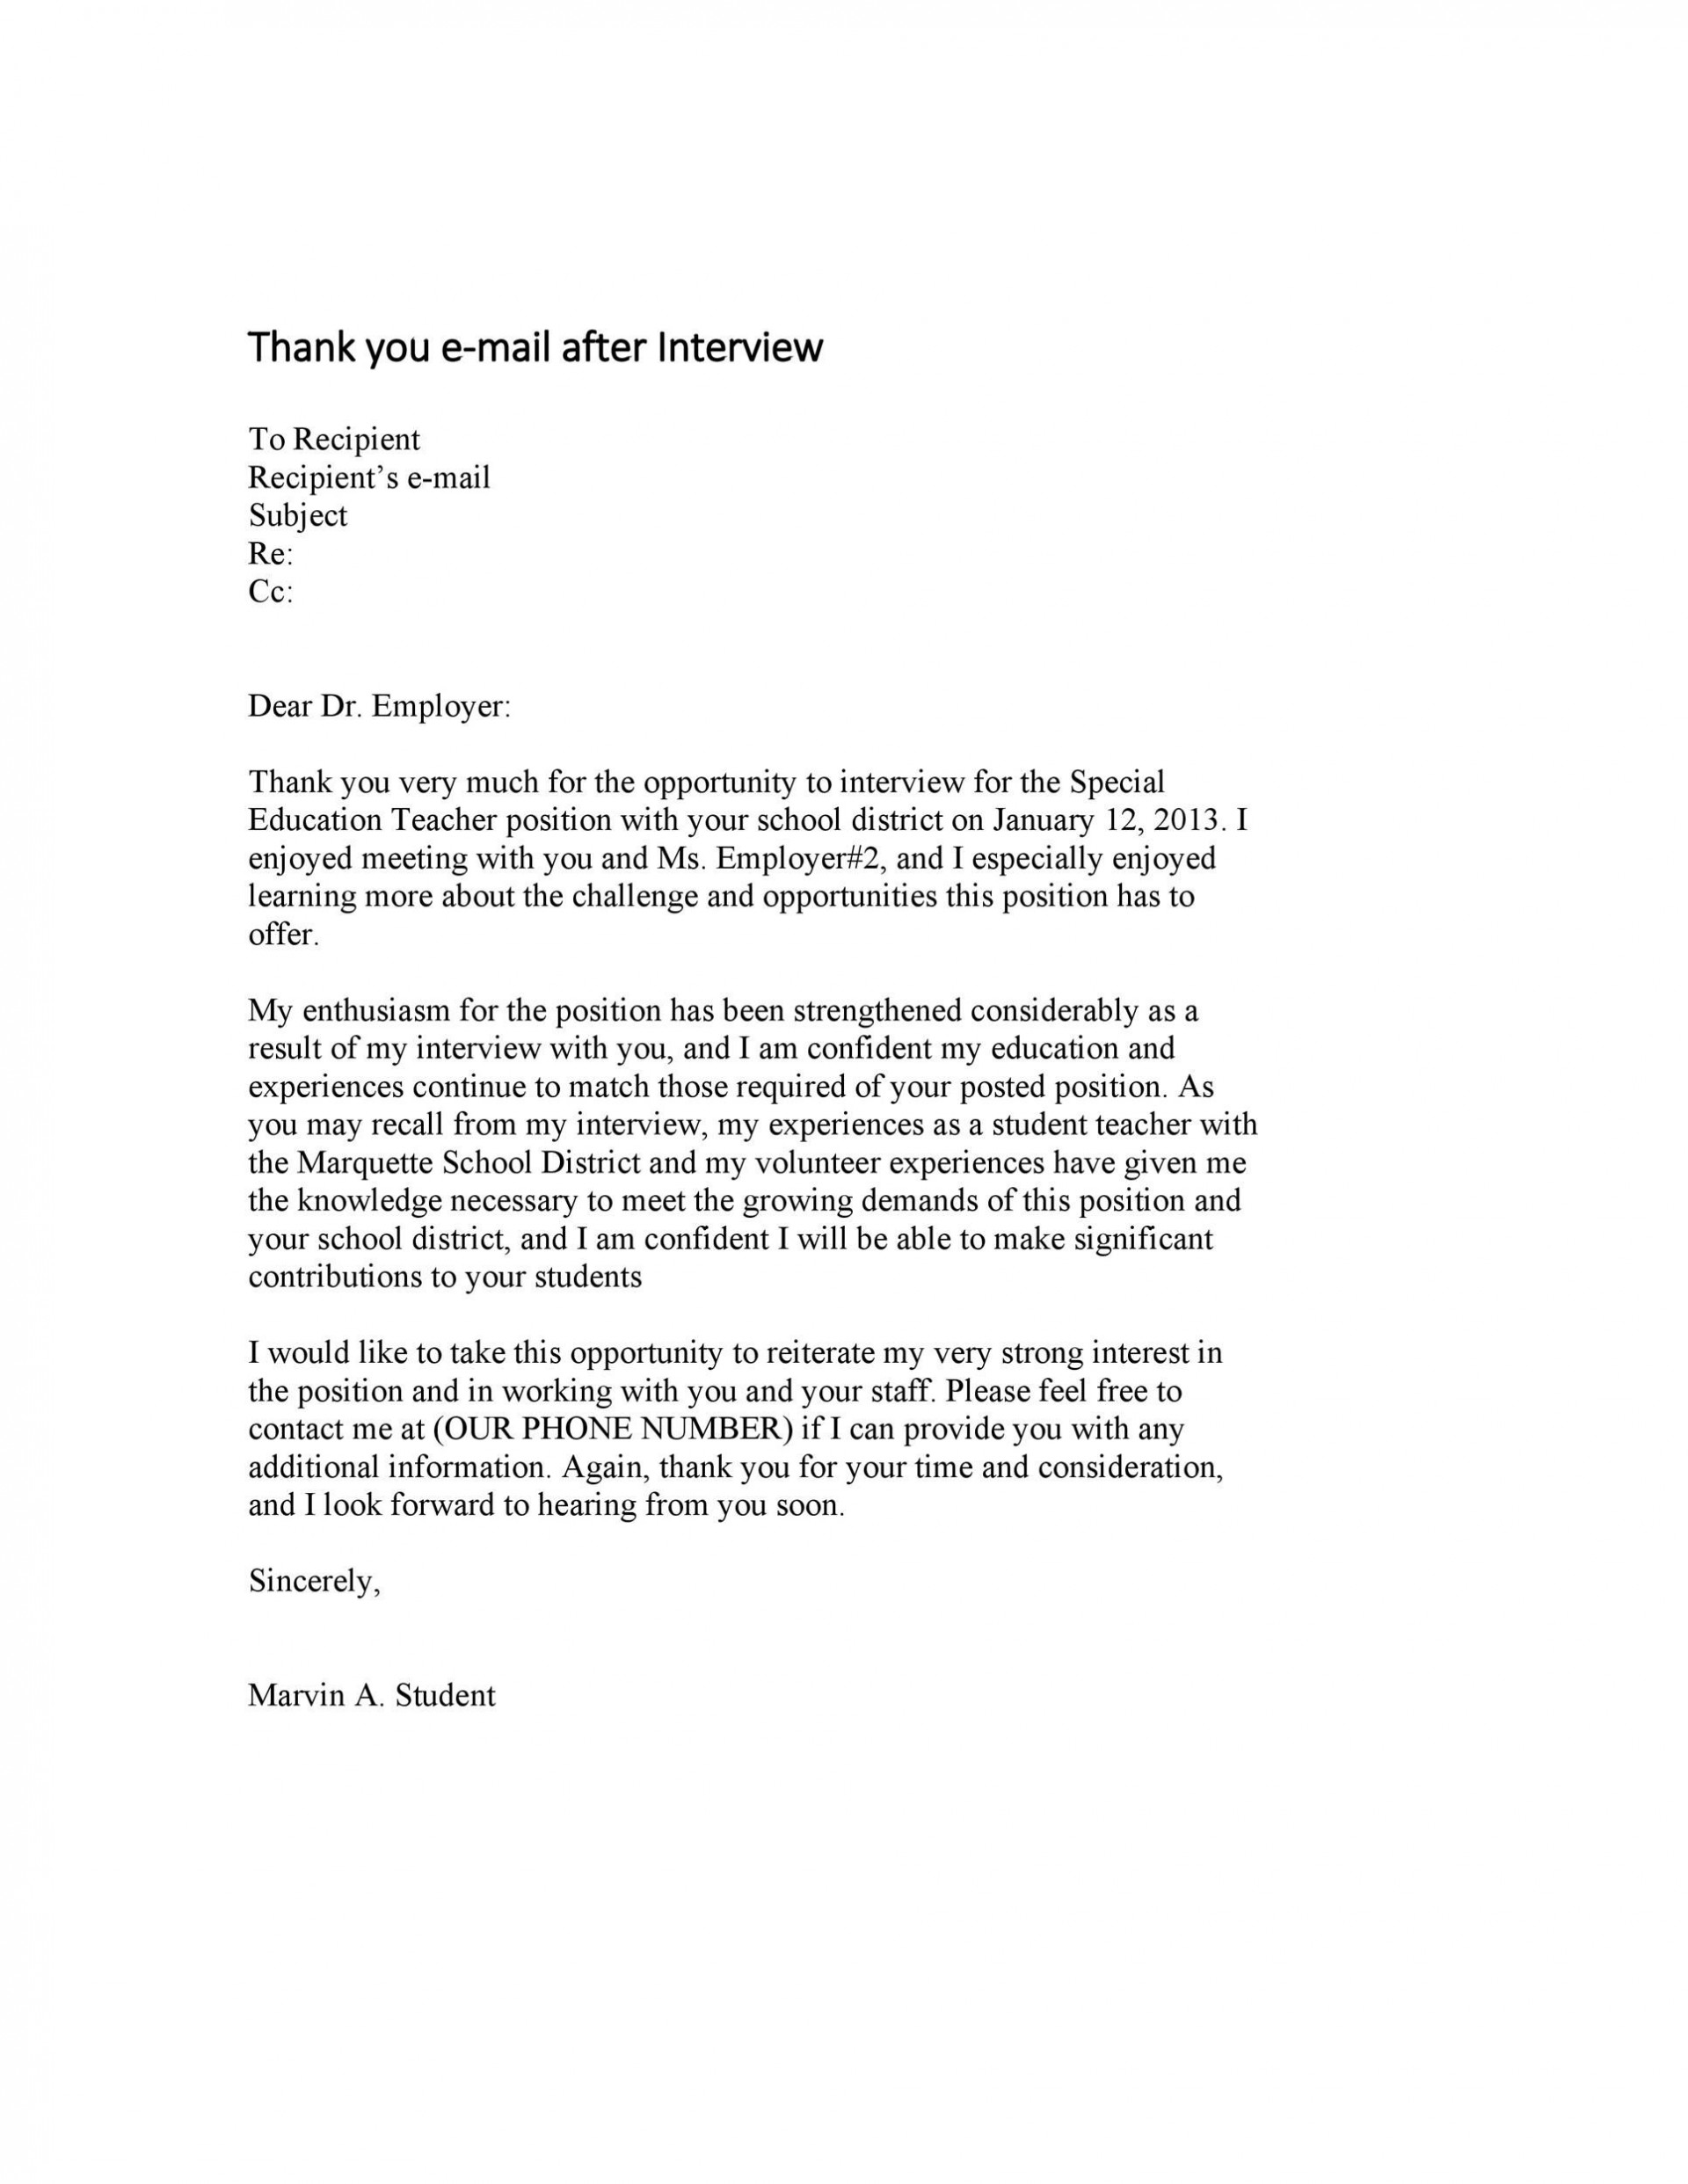 007 Imposing Handwritten Thank You Note After Interview Template High Definition 1920